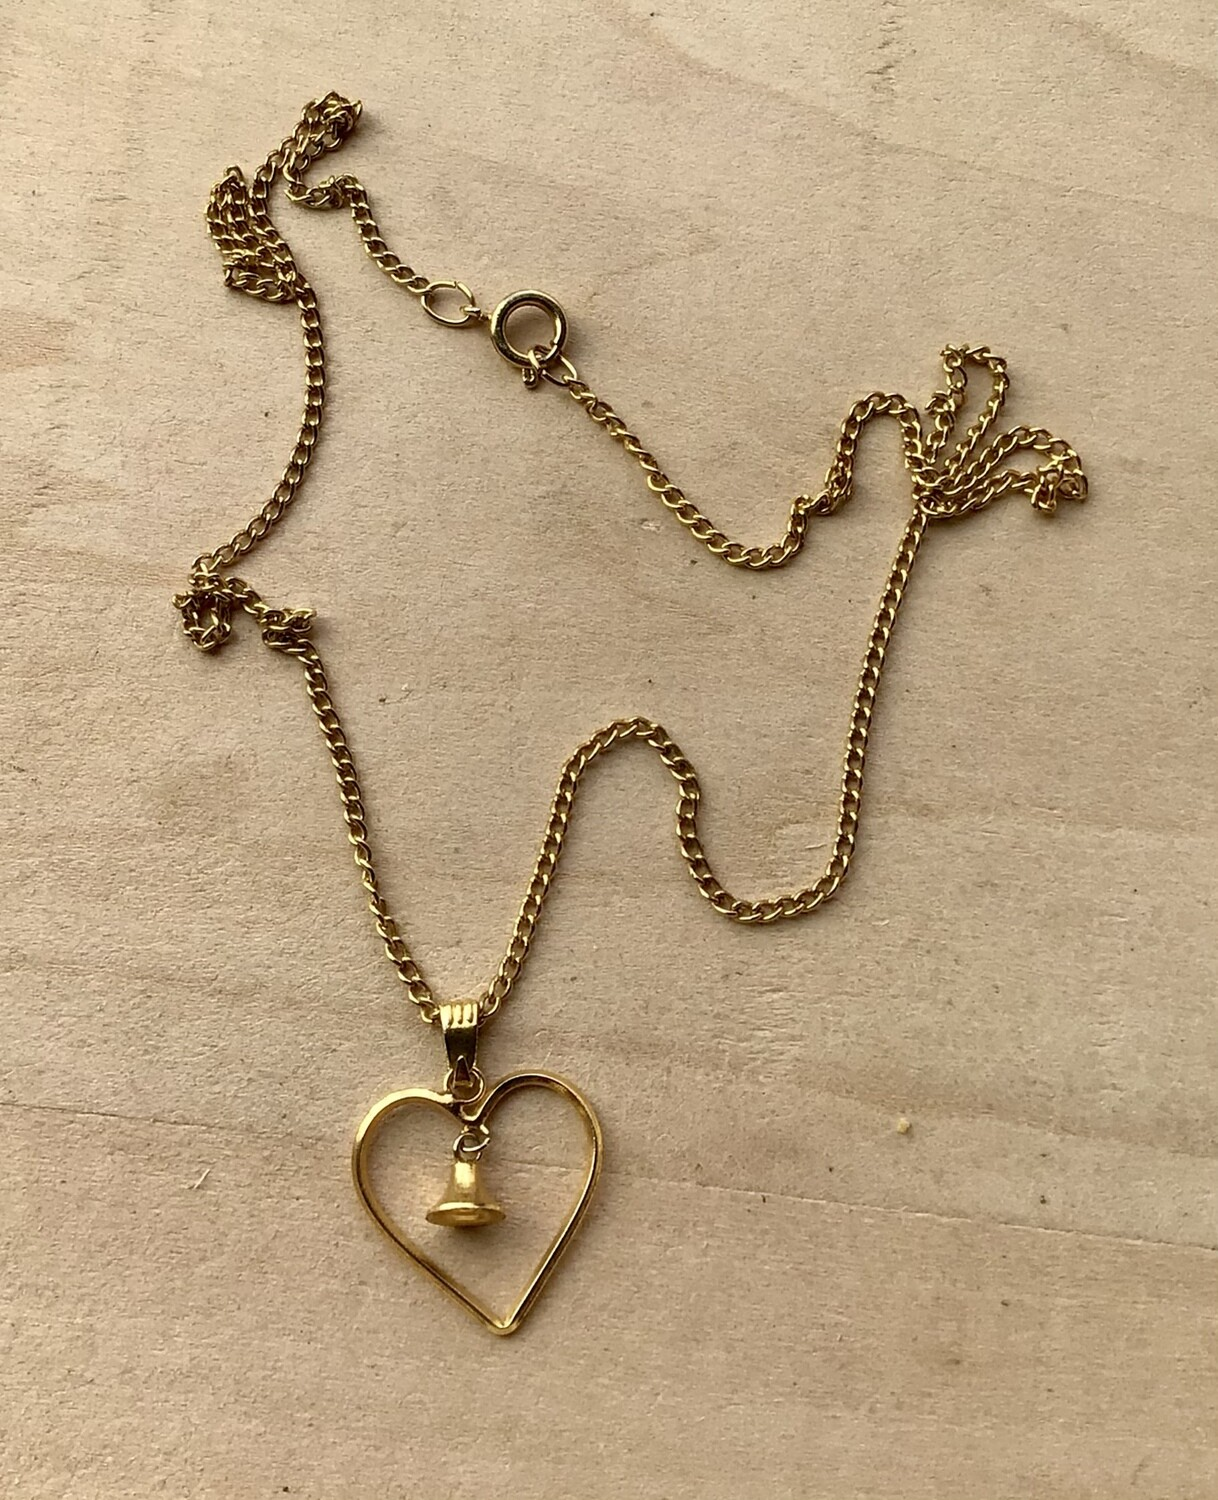 Necklace: Gold-Tone Heart With Bell